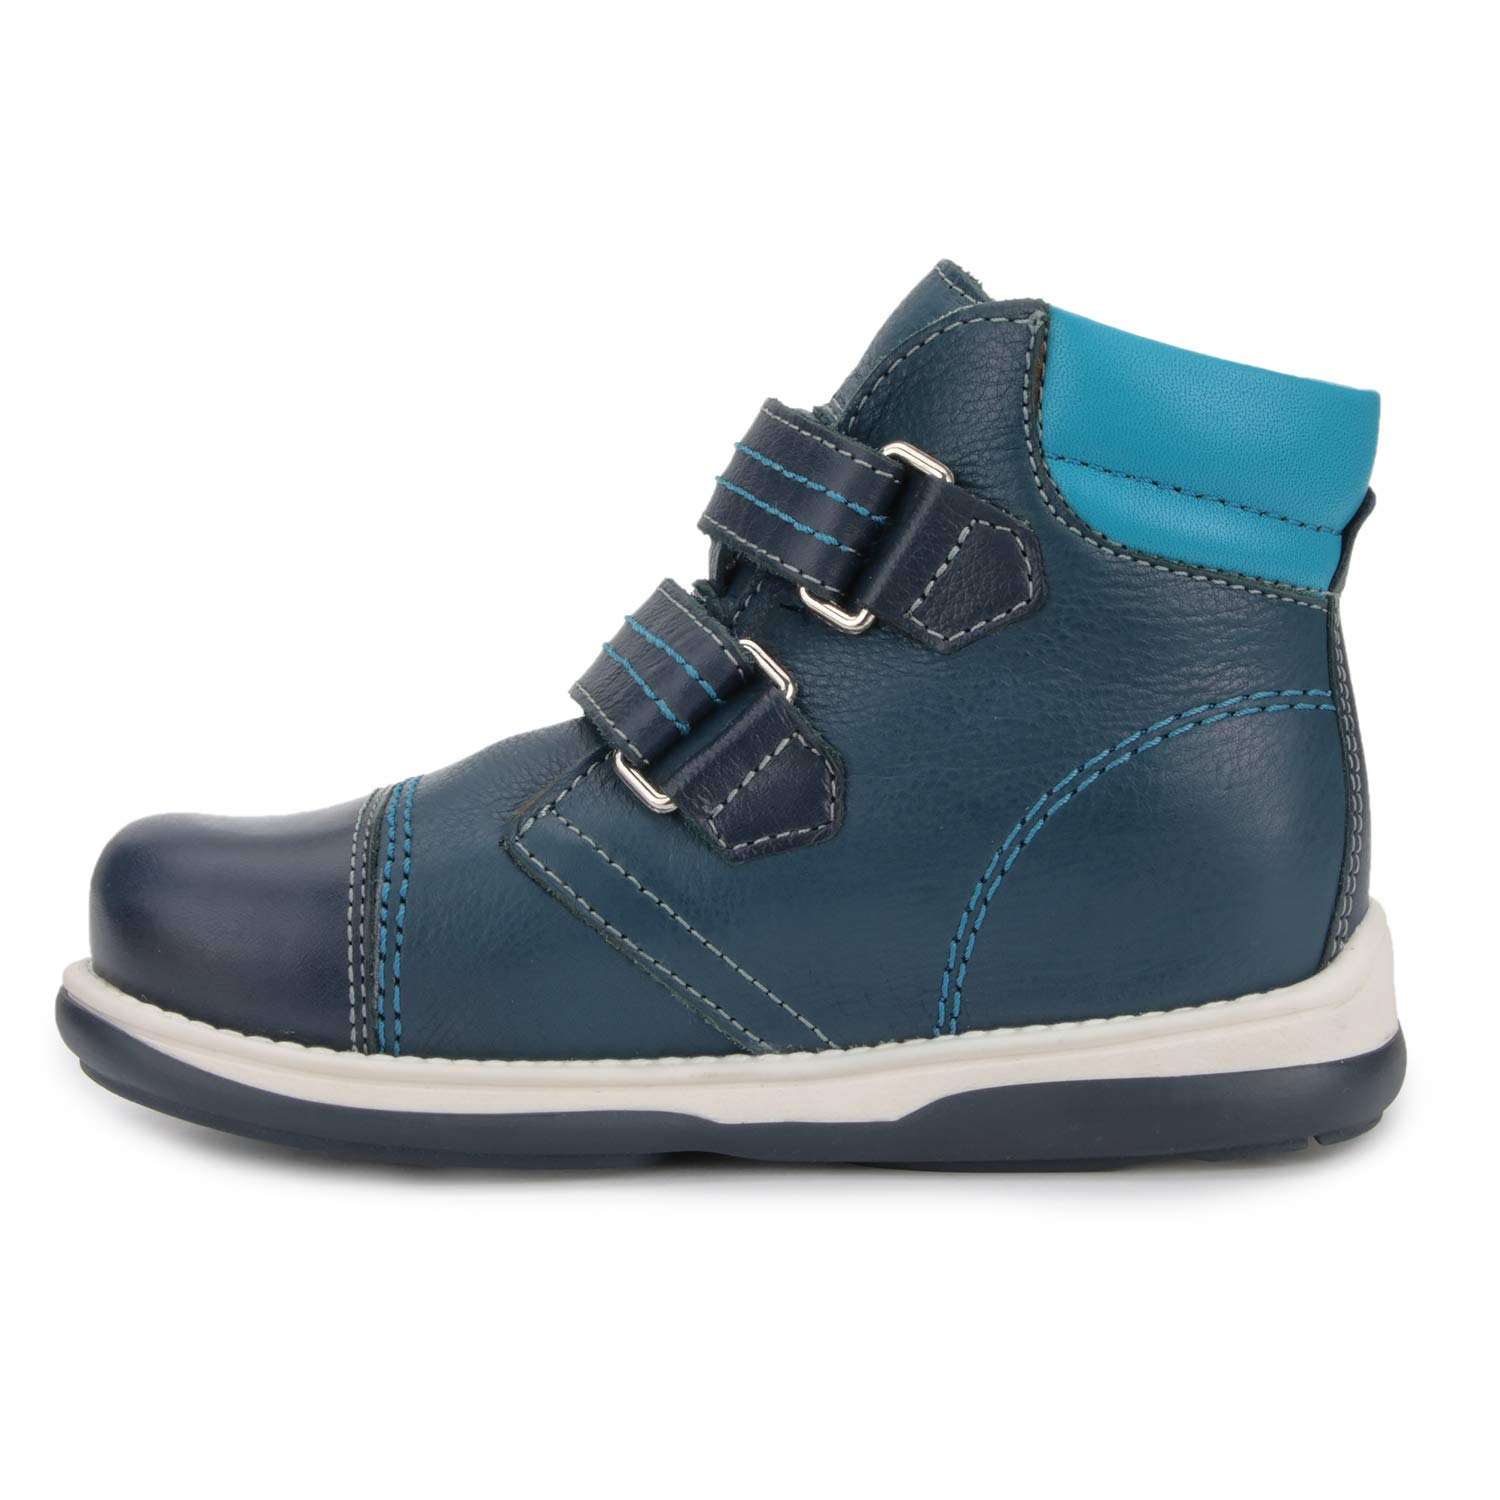 Memo Alex Boys' Corrective Orthopedic High-Top Leather Boot Diagnostic Sole, Navy Blue, 22 (6.5 M US Toddler) by Memo (Image #4)